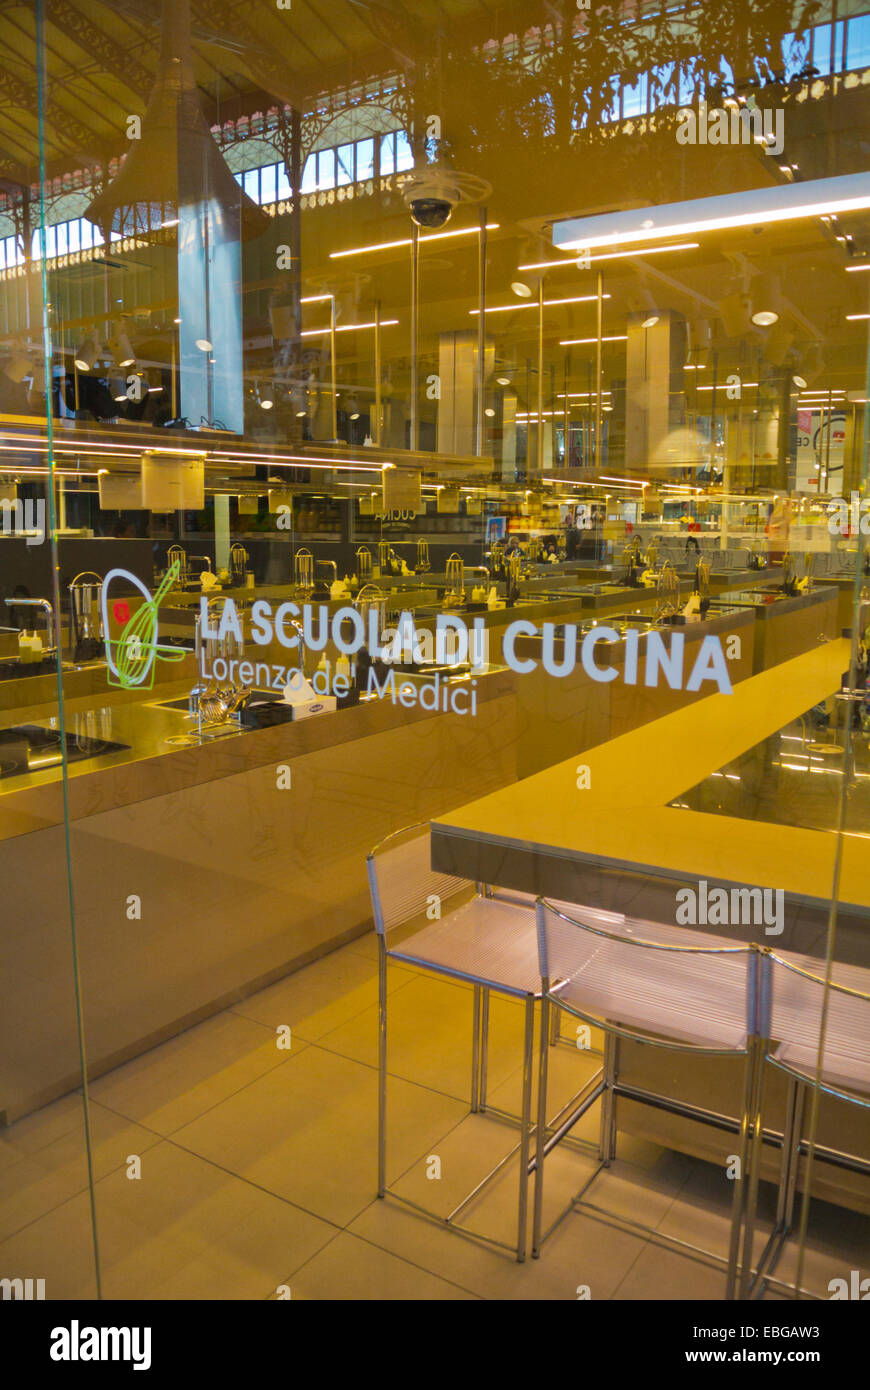 Lorenzo de Medici, cooking school, Mercato centrale, central market hall, 2nd floor, Florence, Tuscany, Italy - Stock Image